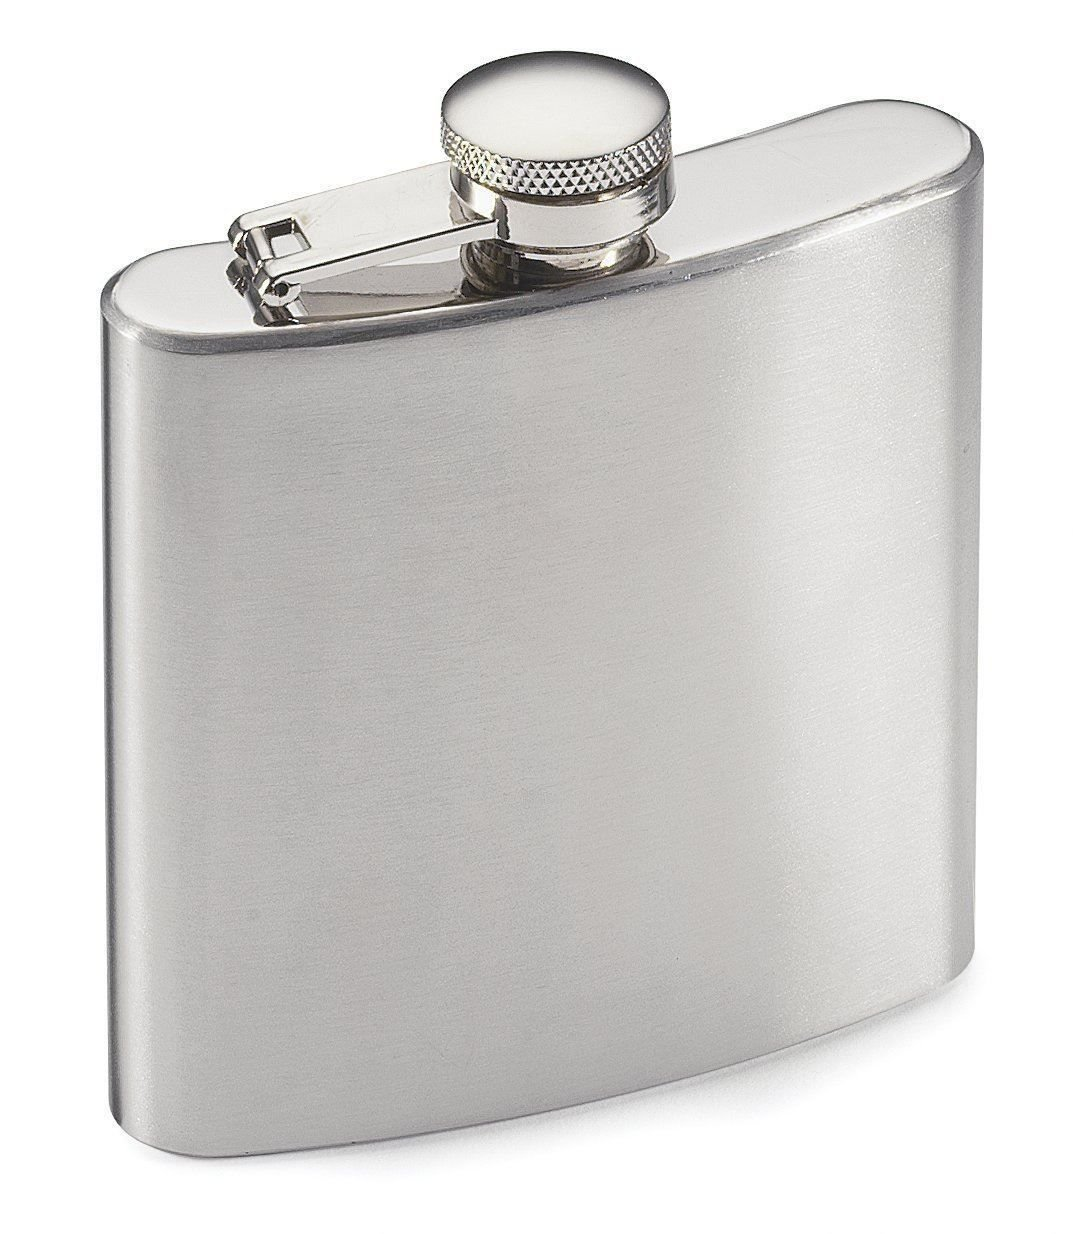 SHOP OF ACCESSORIES® - 8 oz Stainless Steel Hip Whiskey Flask